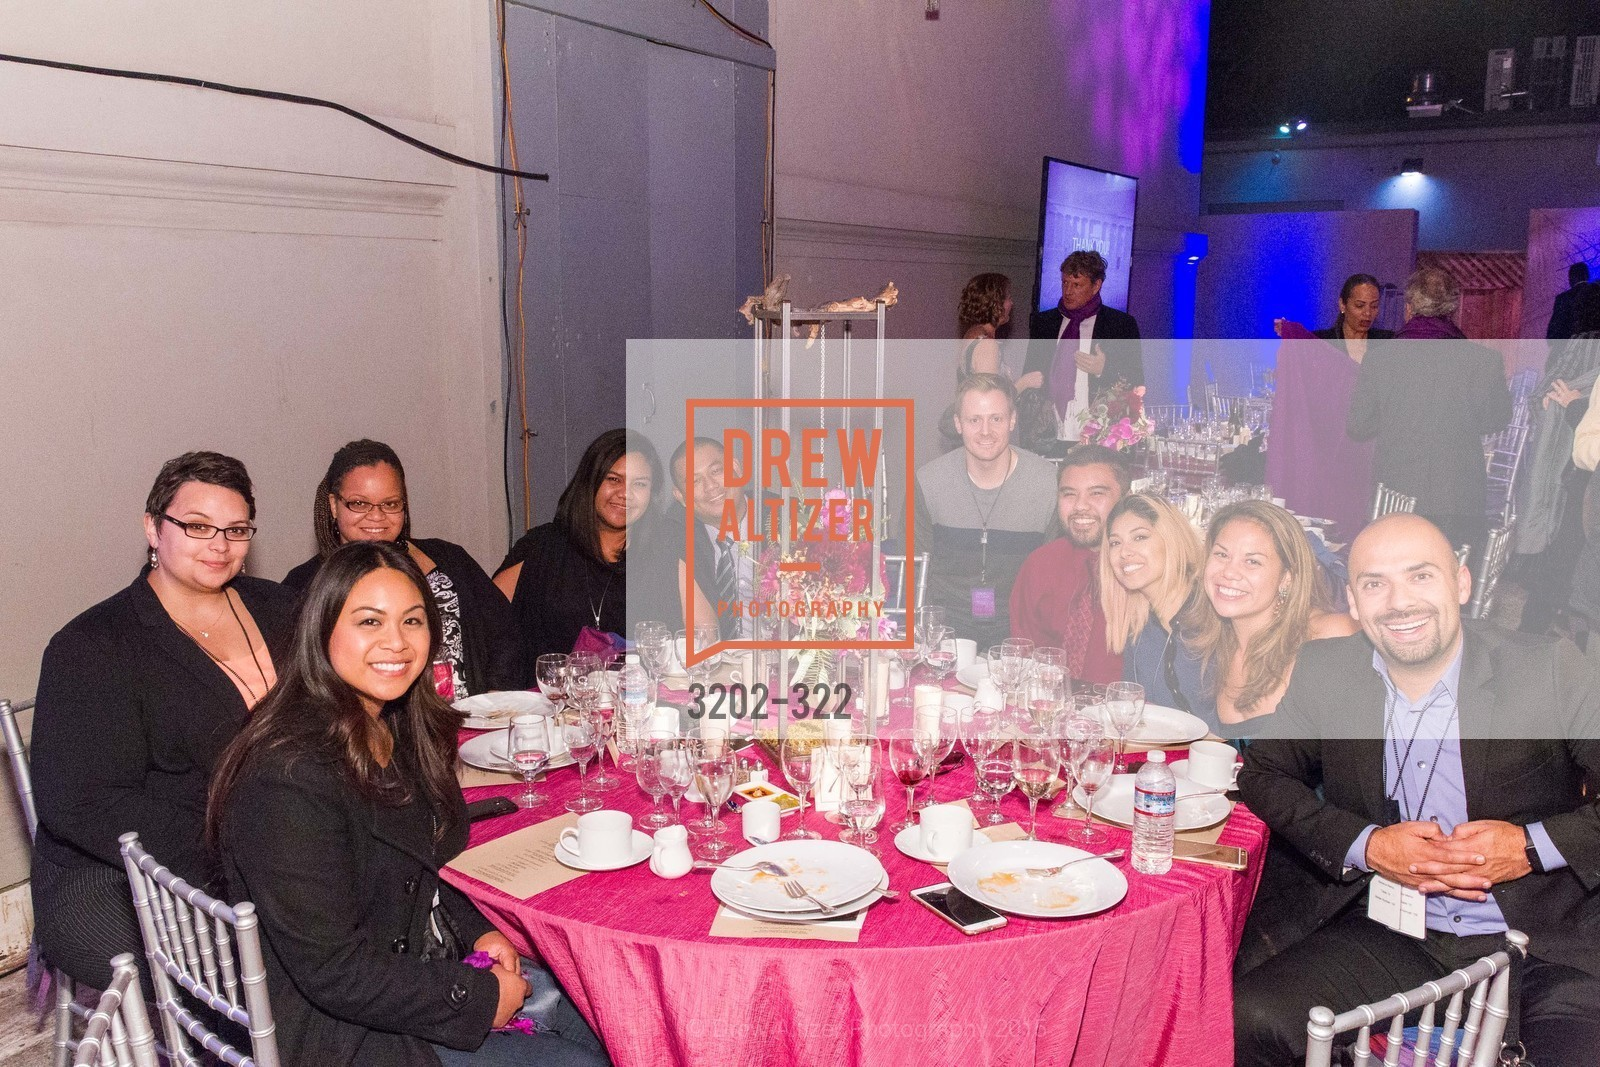 Top Picks, Gala at The Greek Benefiting Cal Performances, September 25th, 2015, Photo,Drew Altizer, Drew Altizer Photography, full-service agency, private events, San Francisco photographer, photographer california